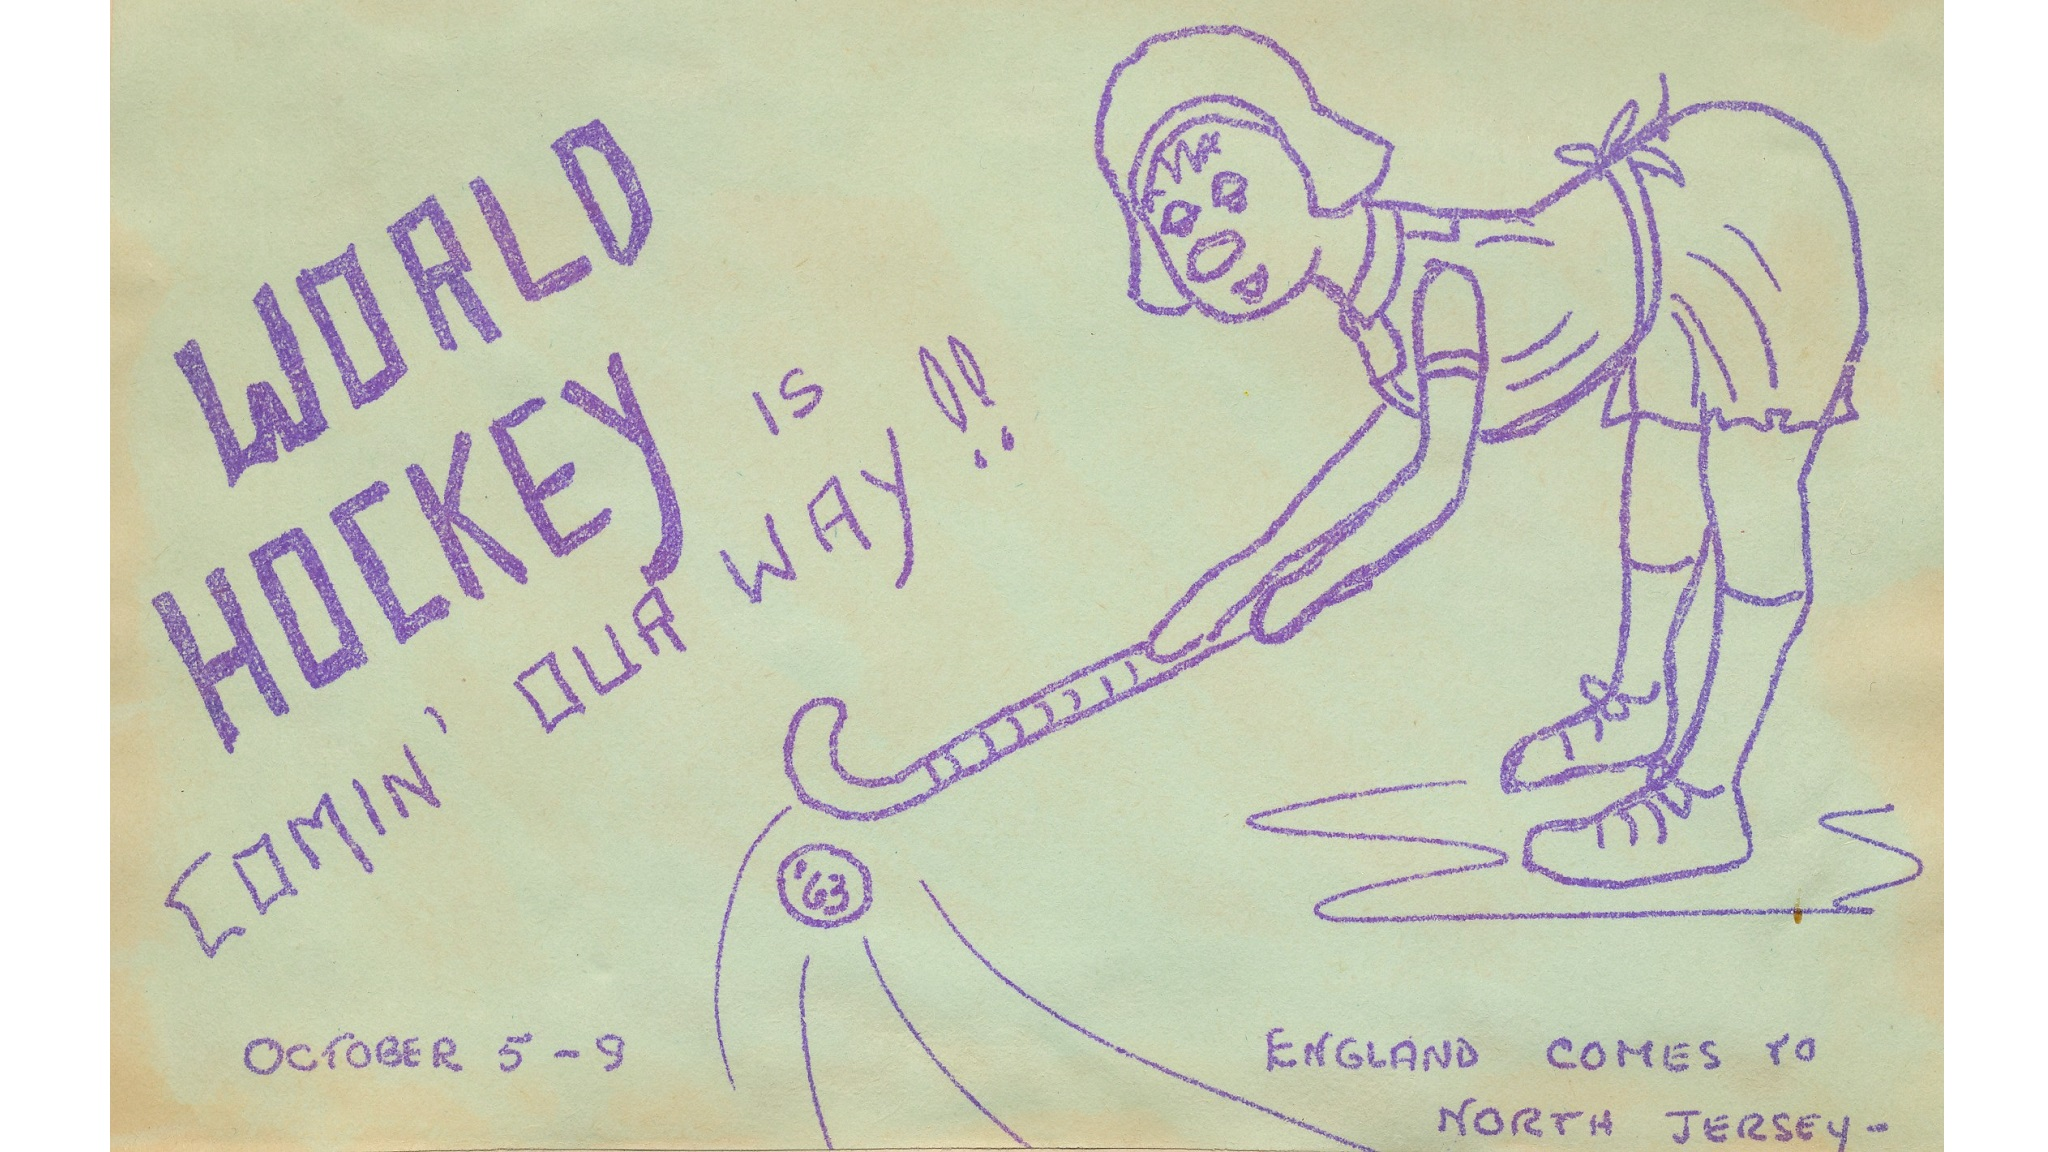 'World Hockey is Comin' Our Way!', 1963 (Carol Bryant A/17)